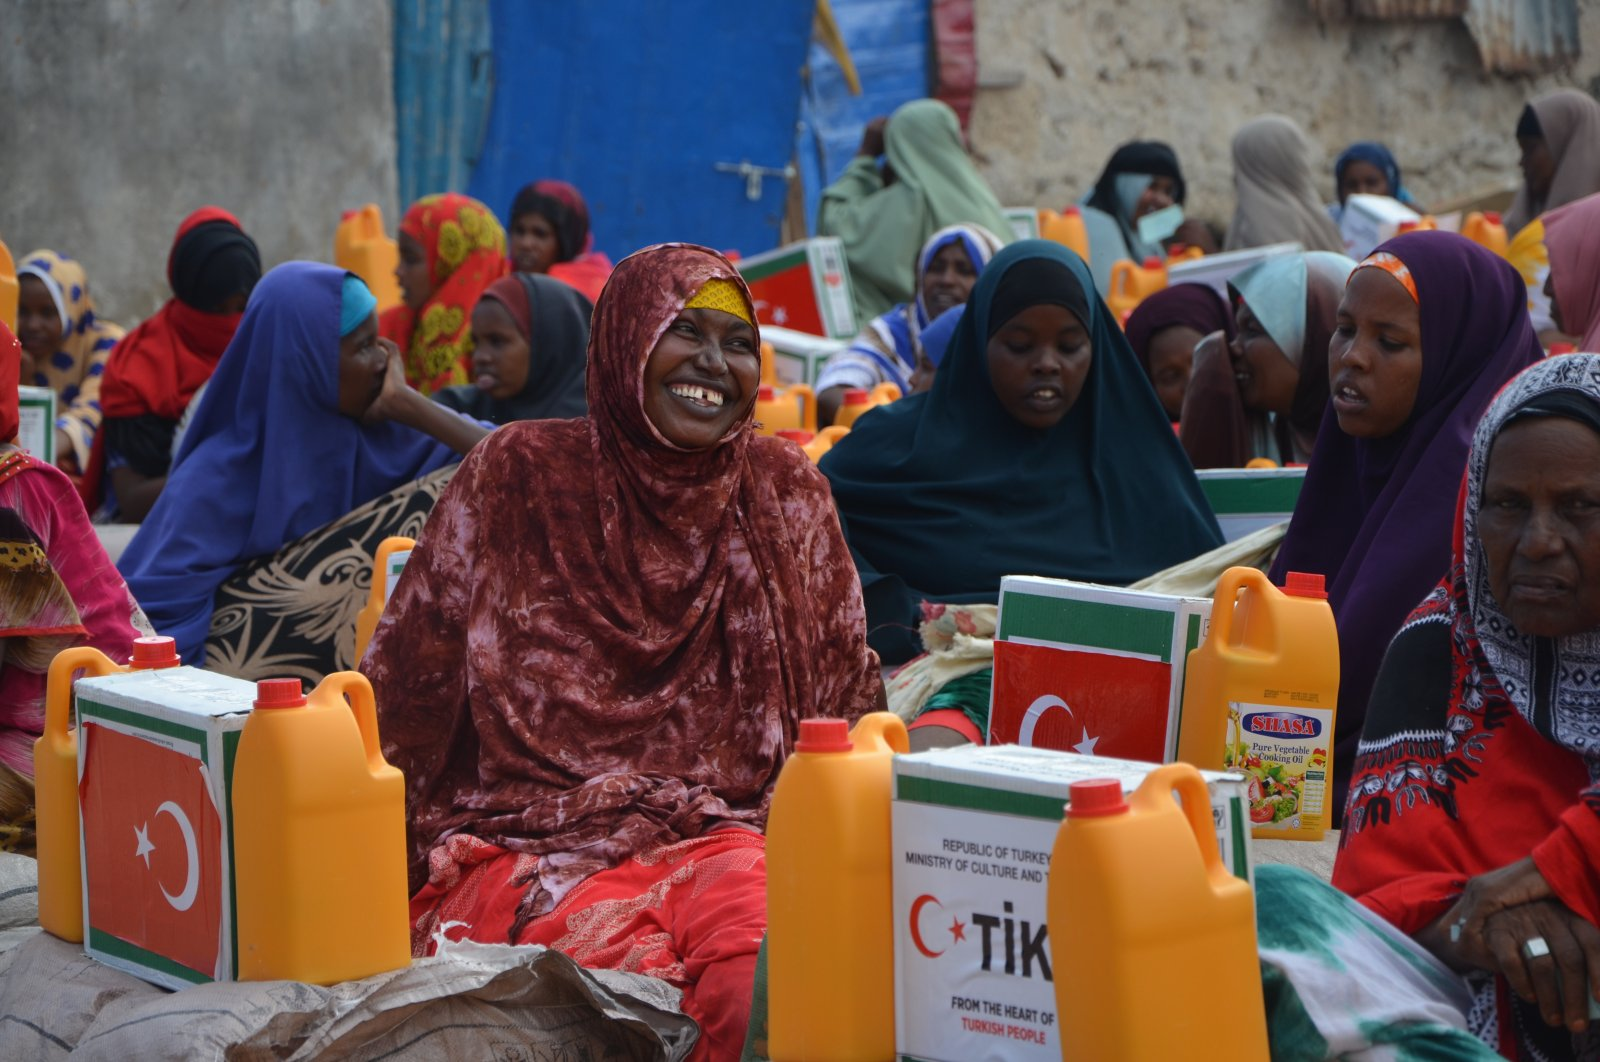 Families living in the Garasbaaley region of Somalia's capital Mogadishu receive aid supplies from the Turkish Cooperation and Coordination Agency (TİKA), May 12, 2020. (AA Photo)